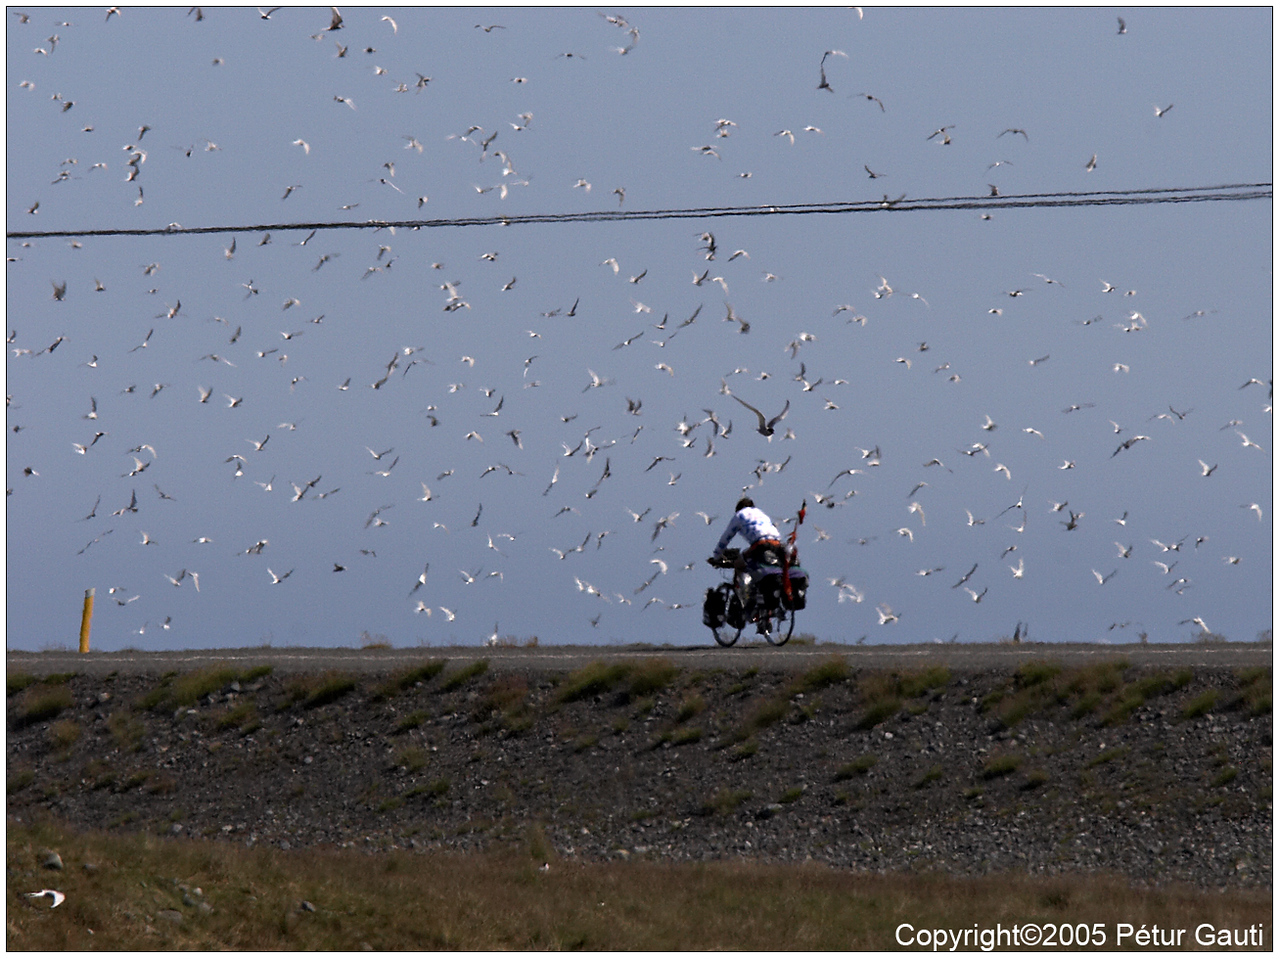 14. July. Birds - Arctic terns attacking an unfortunate cyclist.